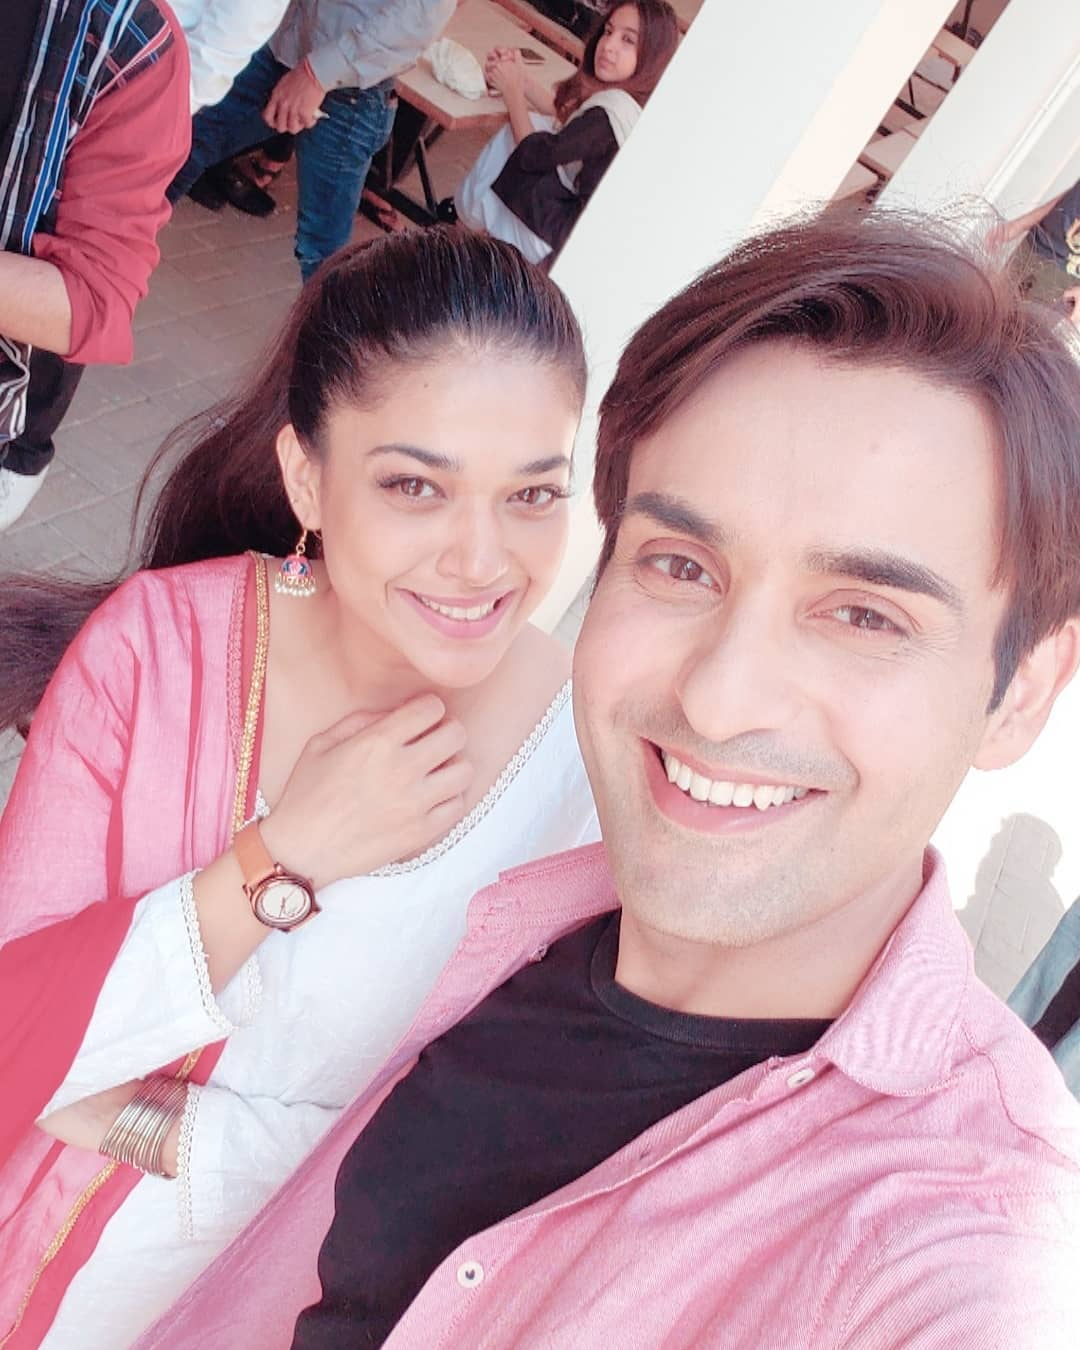 Latest Clicks of Beautiful Actress Sanam Jung with her Husband and Daughter